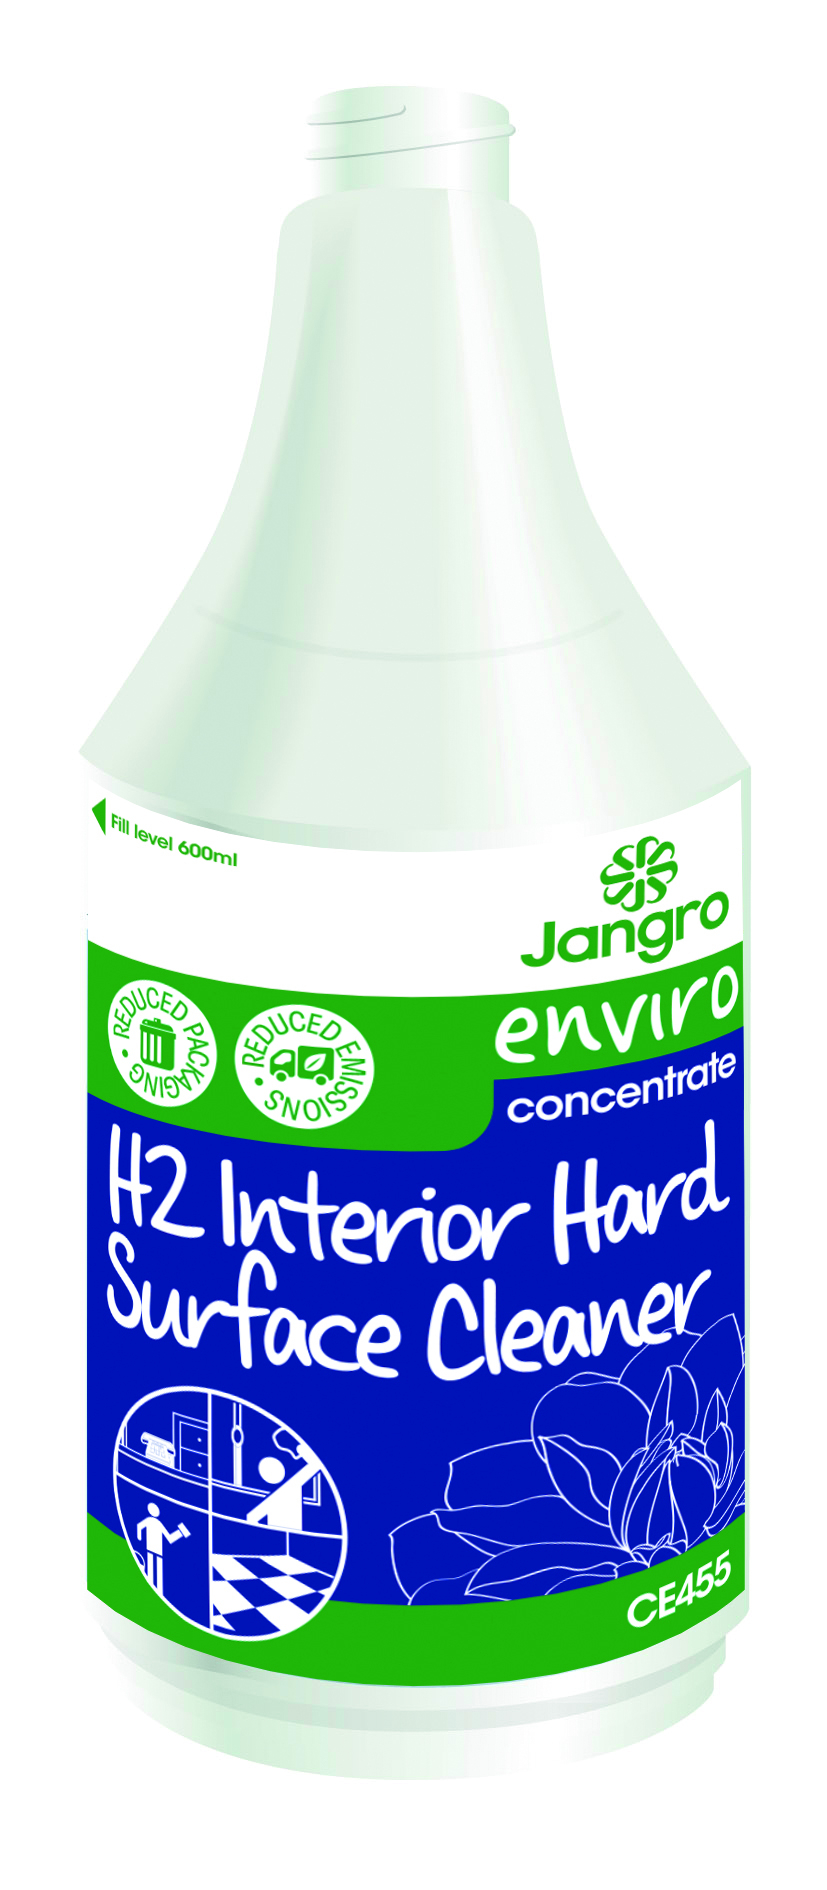 Spray Bottle Enviro H2 Hard Surface Cleaner